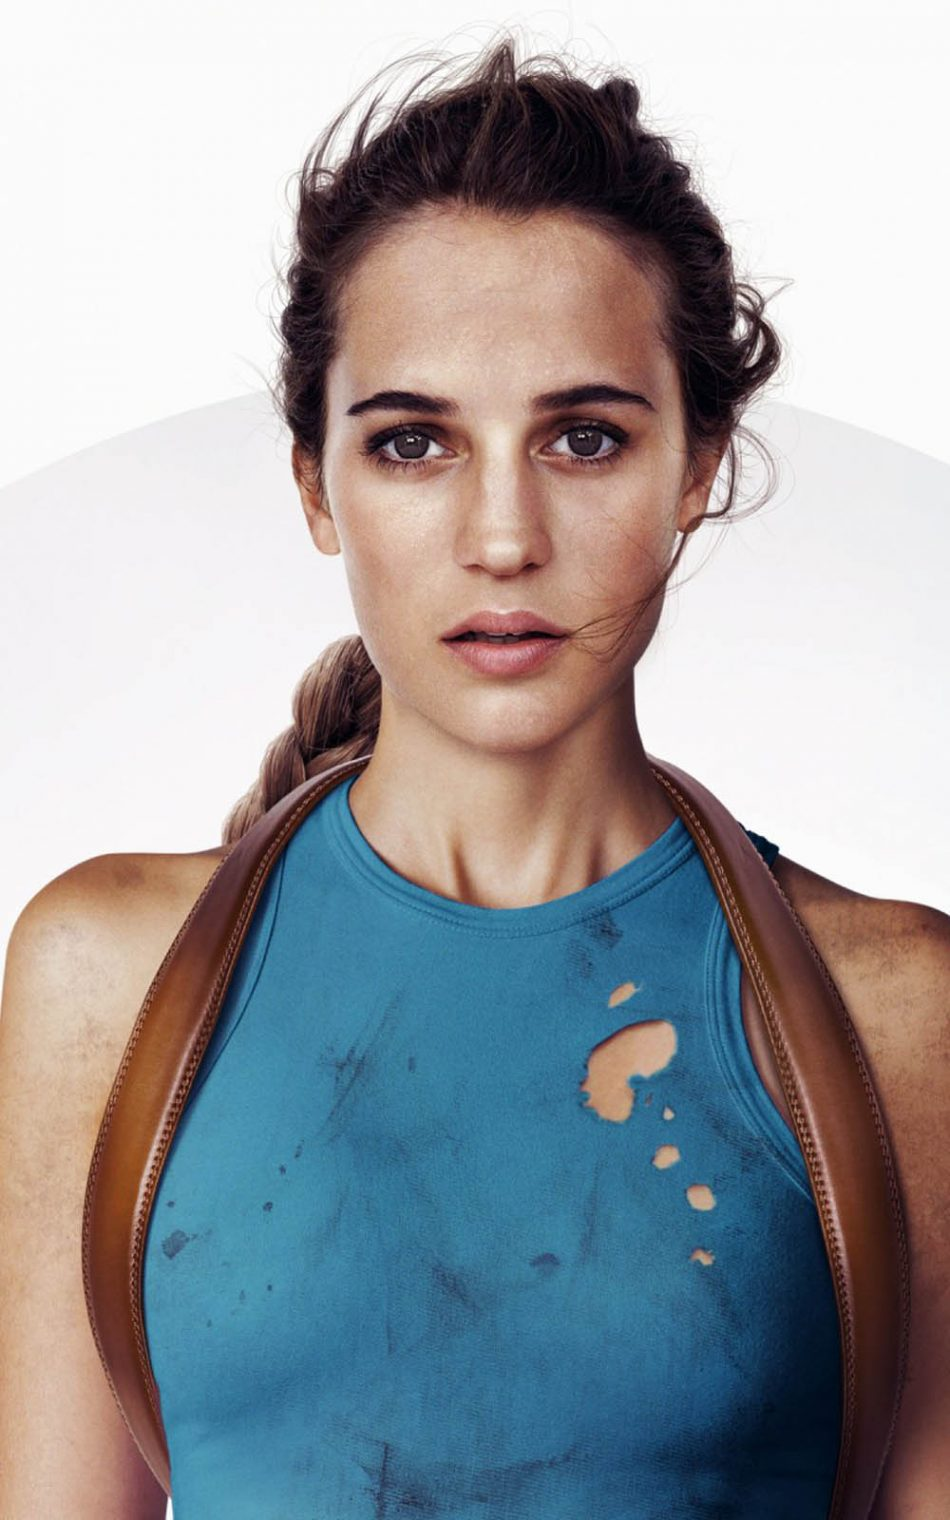 Alicia Vikander In Tomb Raider 2017 HD Mobile Wallpaper